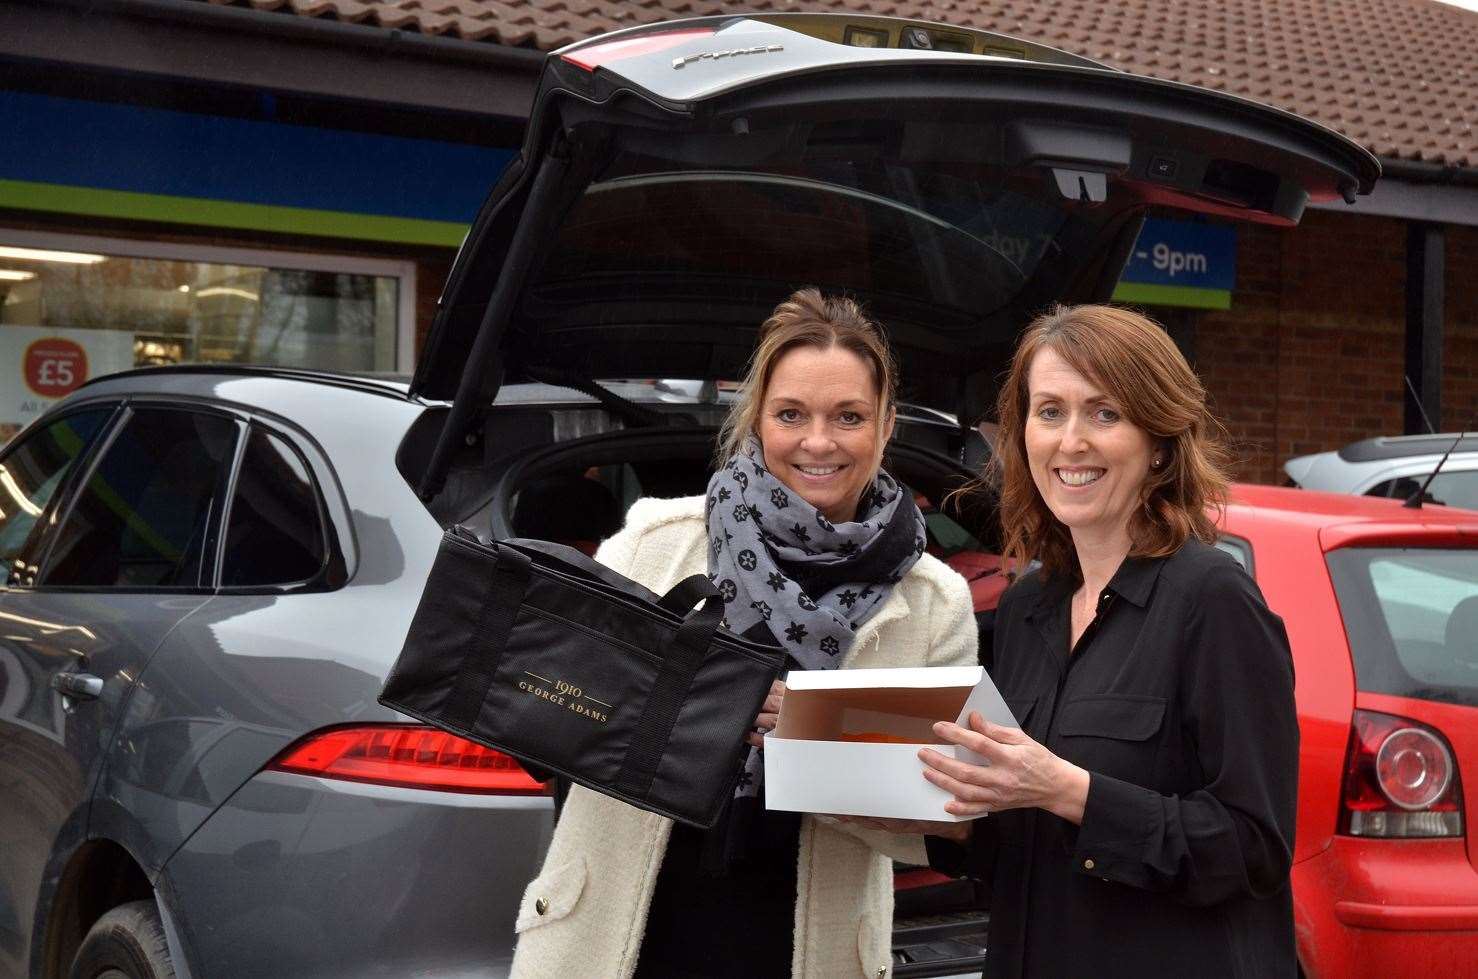 Sharon Tear and Rachelle Chew launching a delivery service. (31882567)